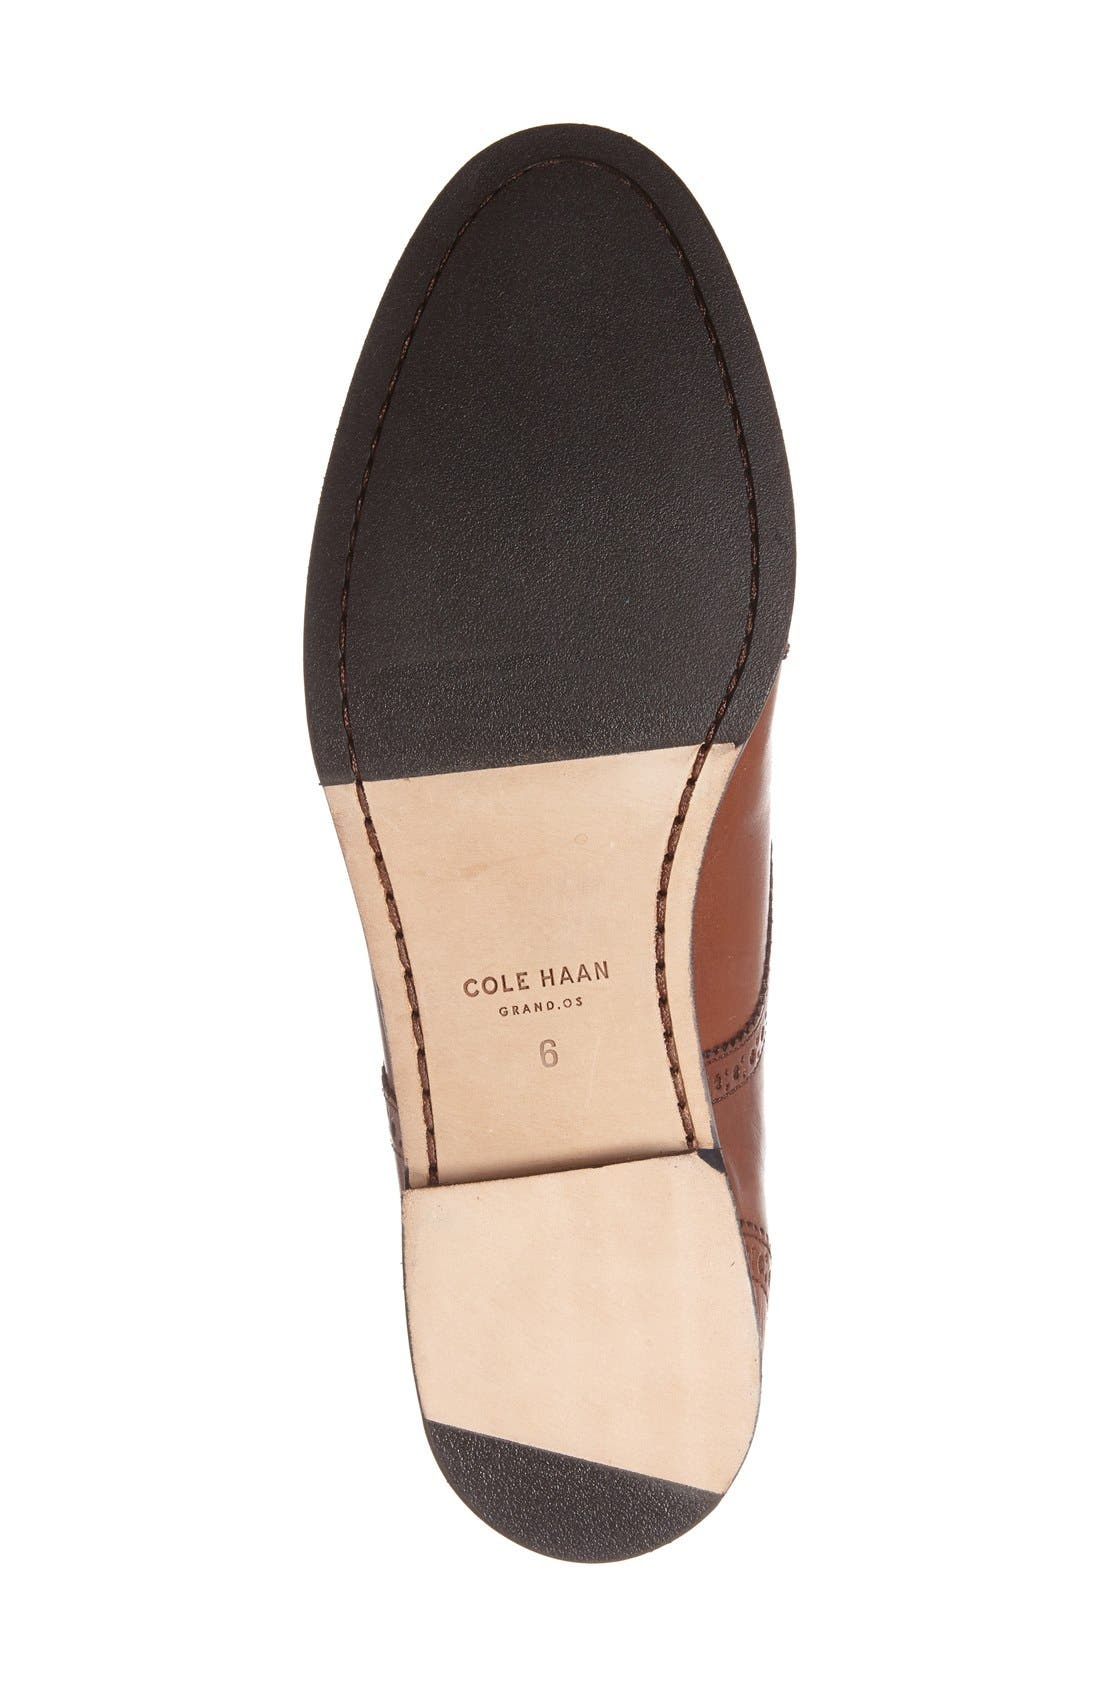 Alternate Image 4  - Cole Haan Grand.OS Oxford (Women)